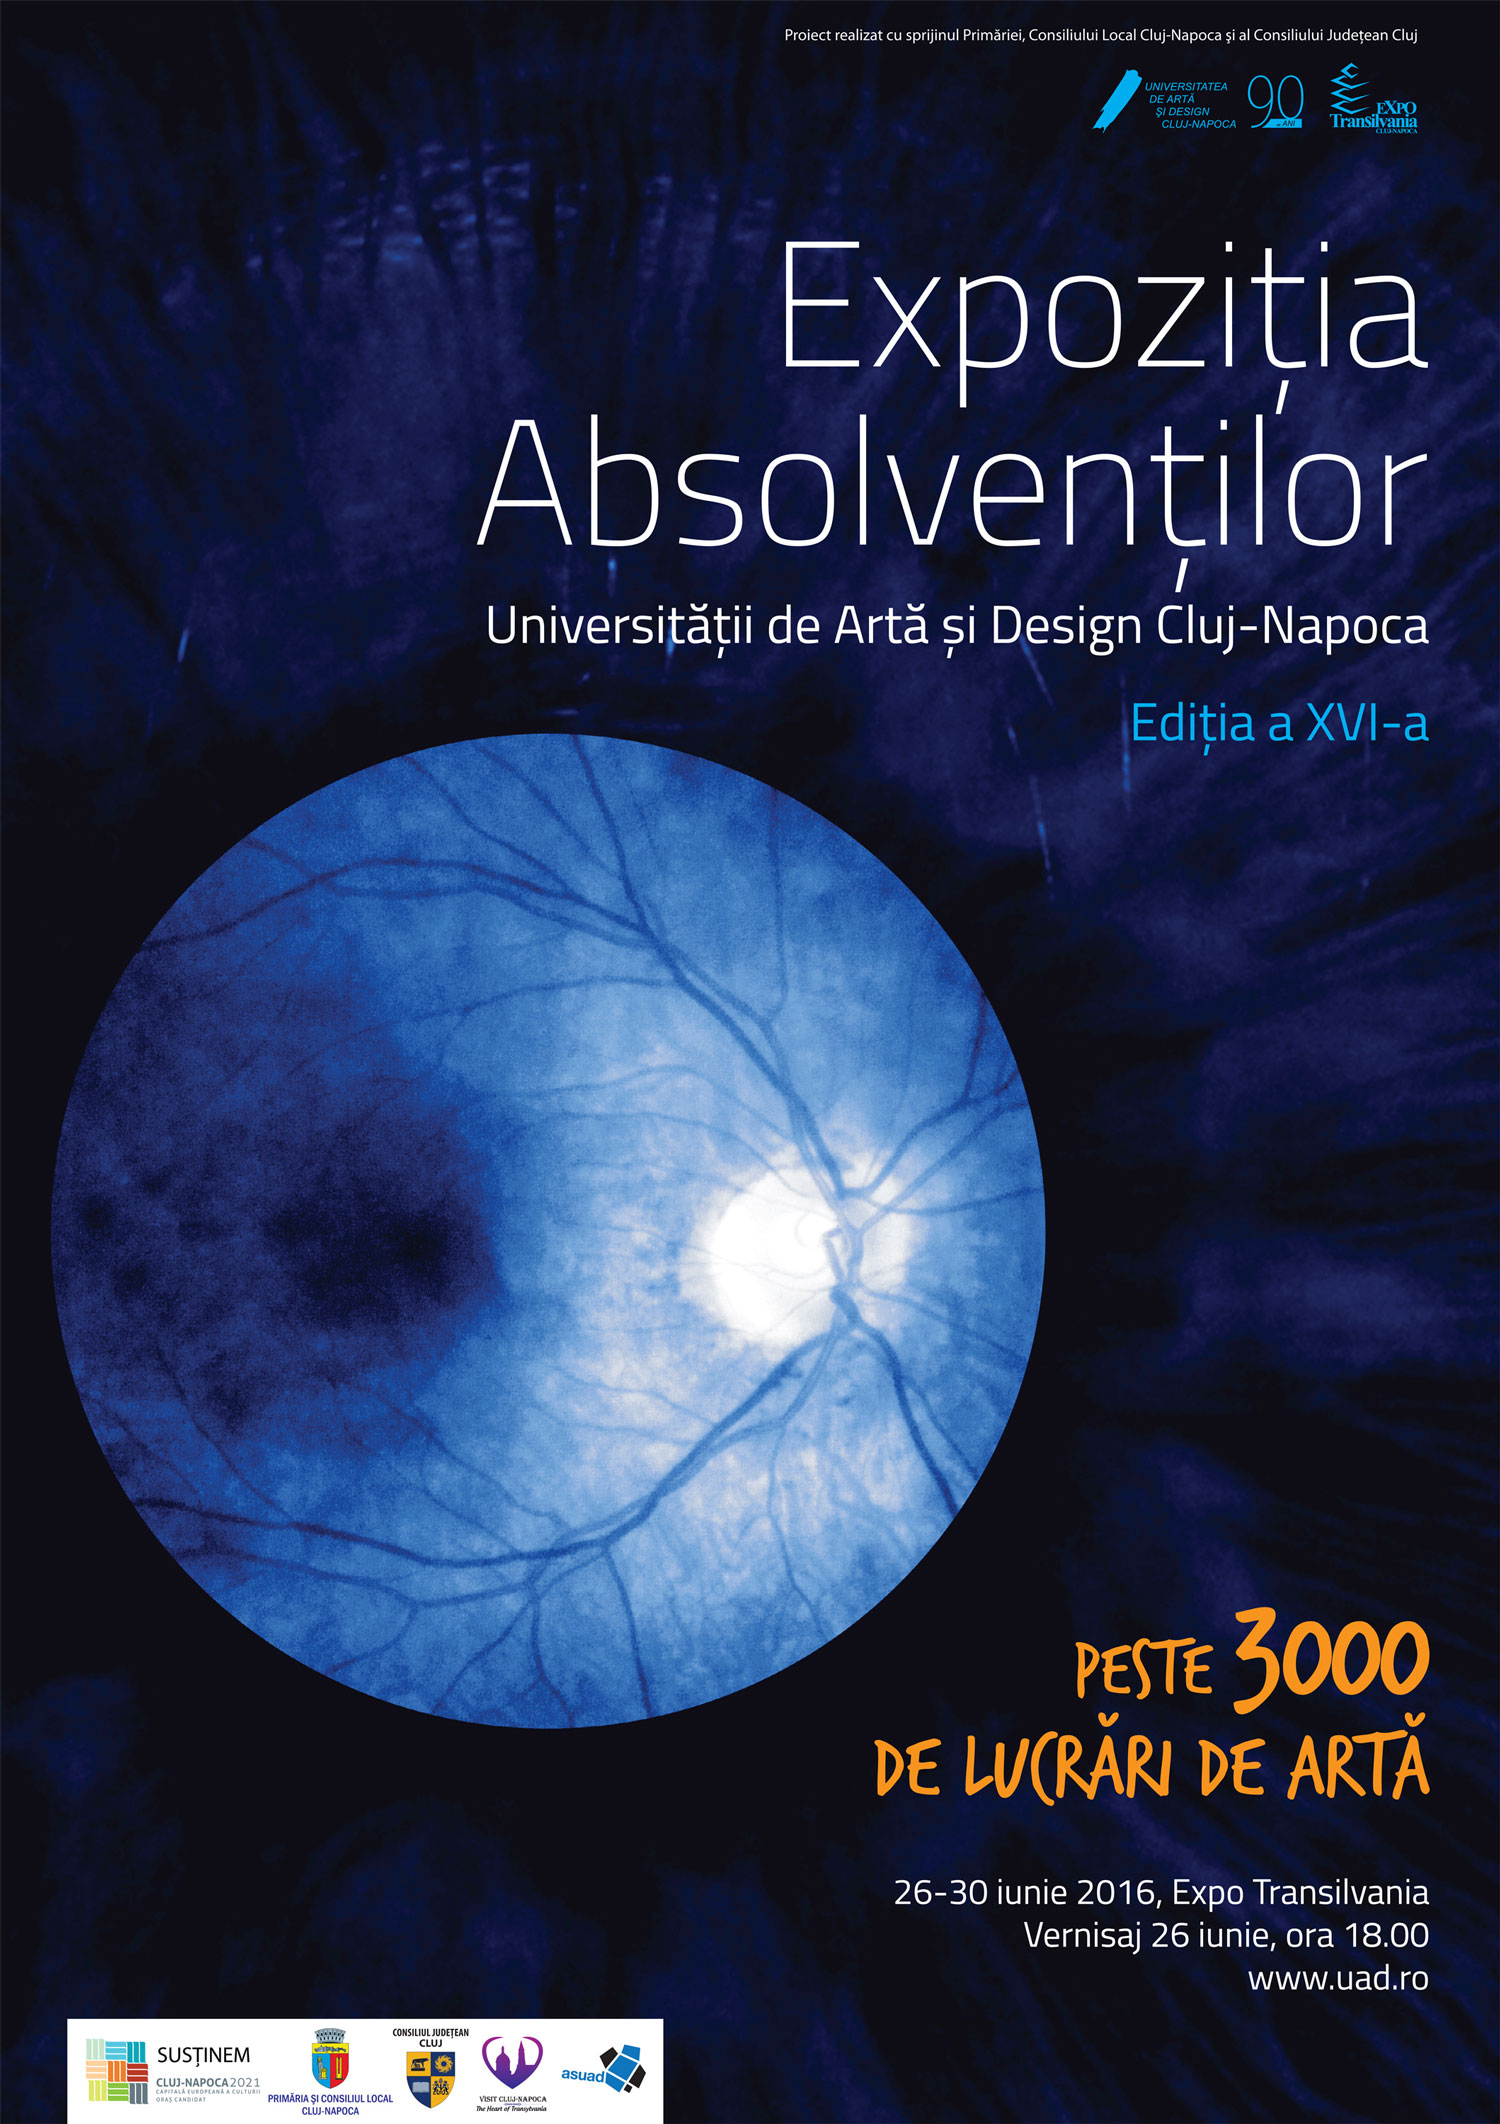 expo-Absolventi_t